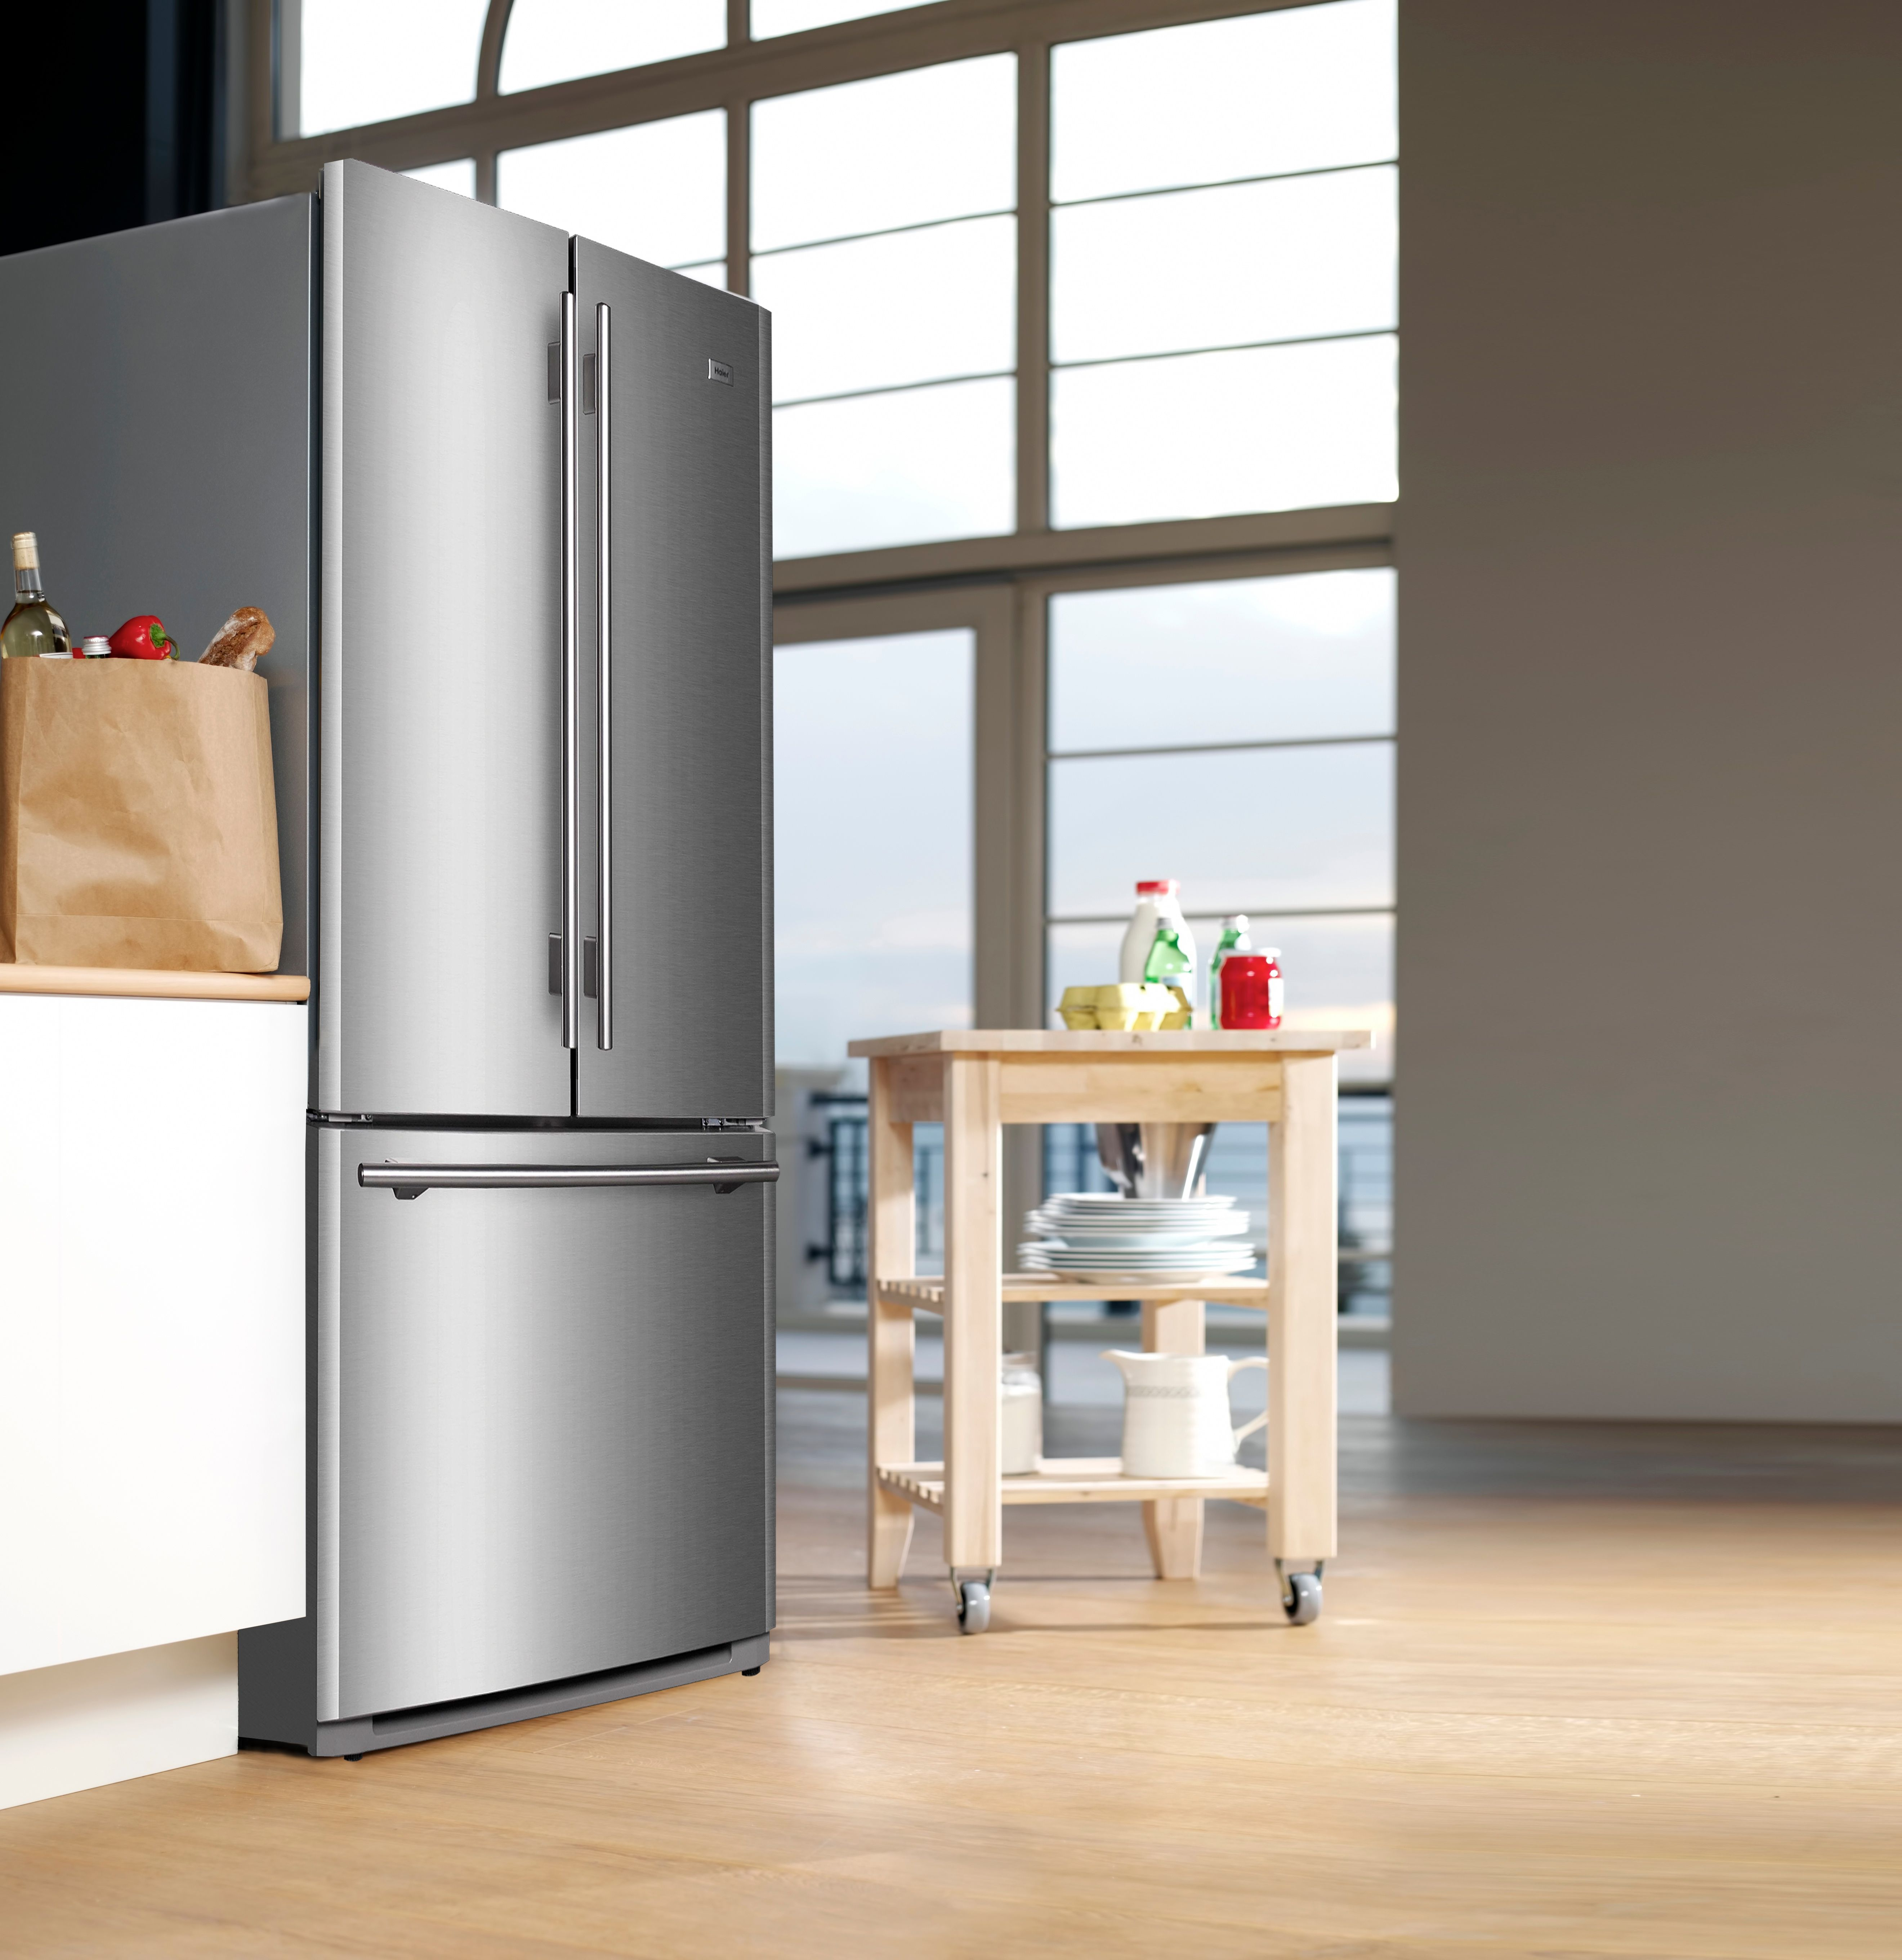 Haier the world s 1 refrigerator brand demonstrates an ongoing